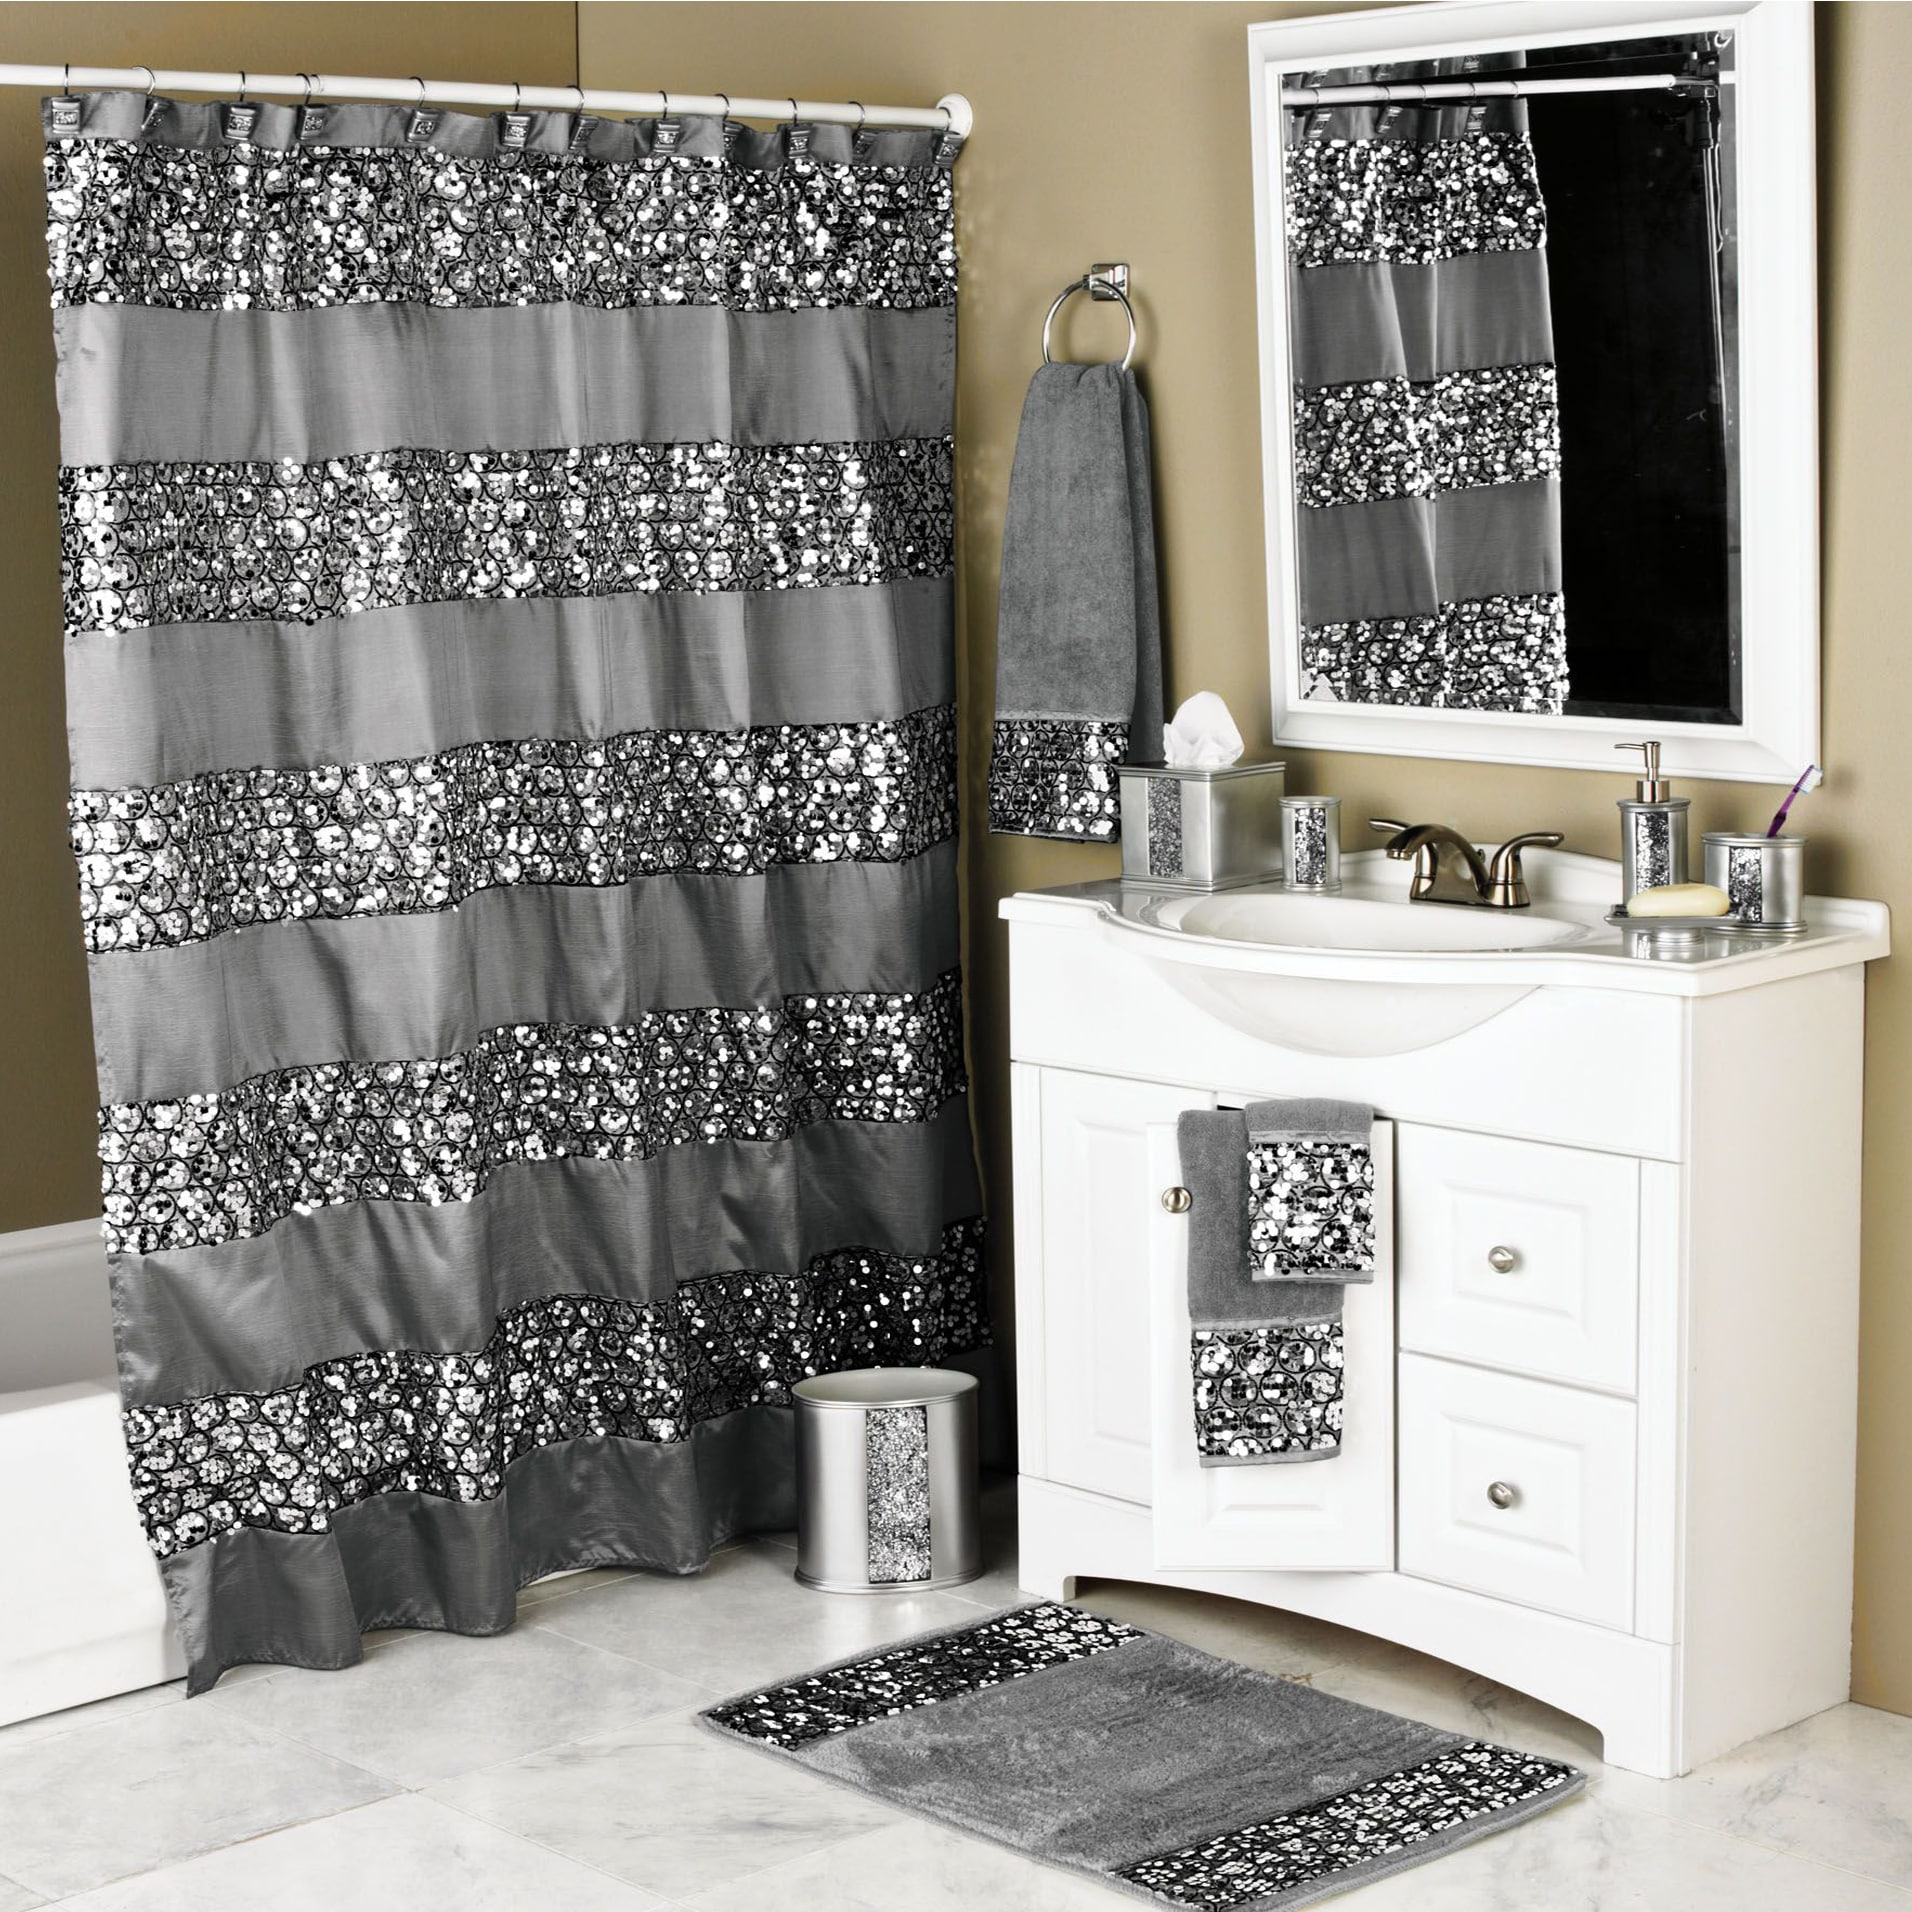 Shower Curtains Sale Luxury Shower Curtain And Hooks Set Or Separates